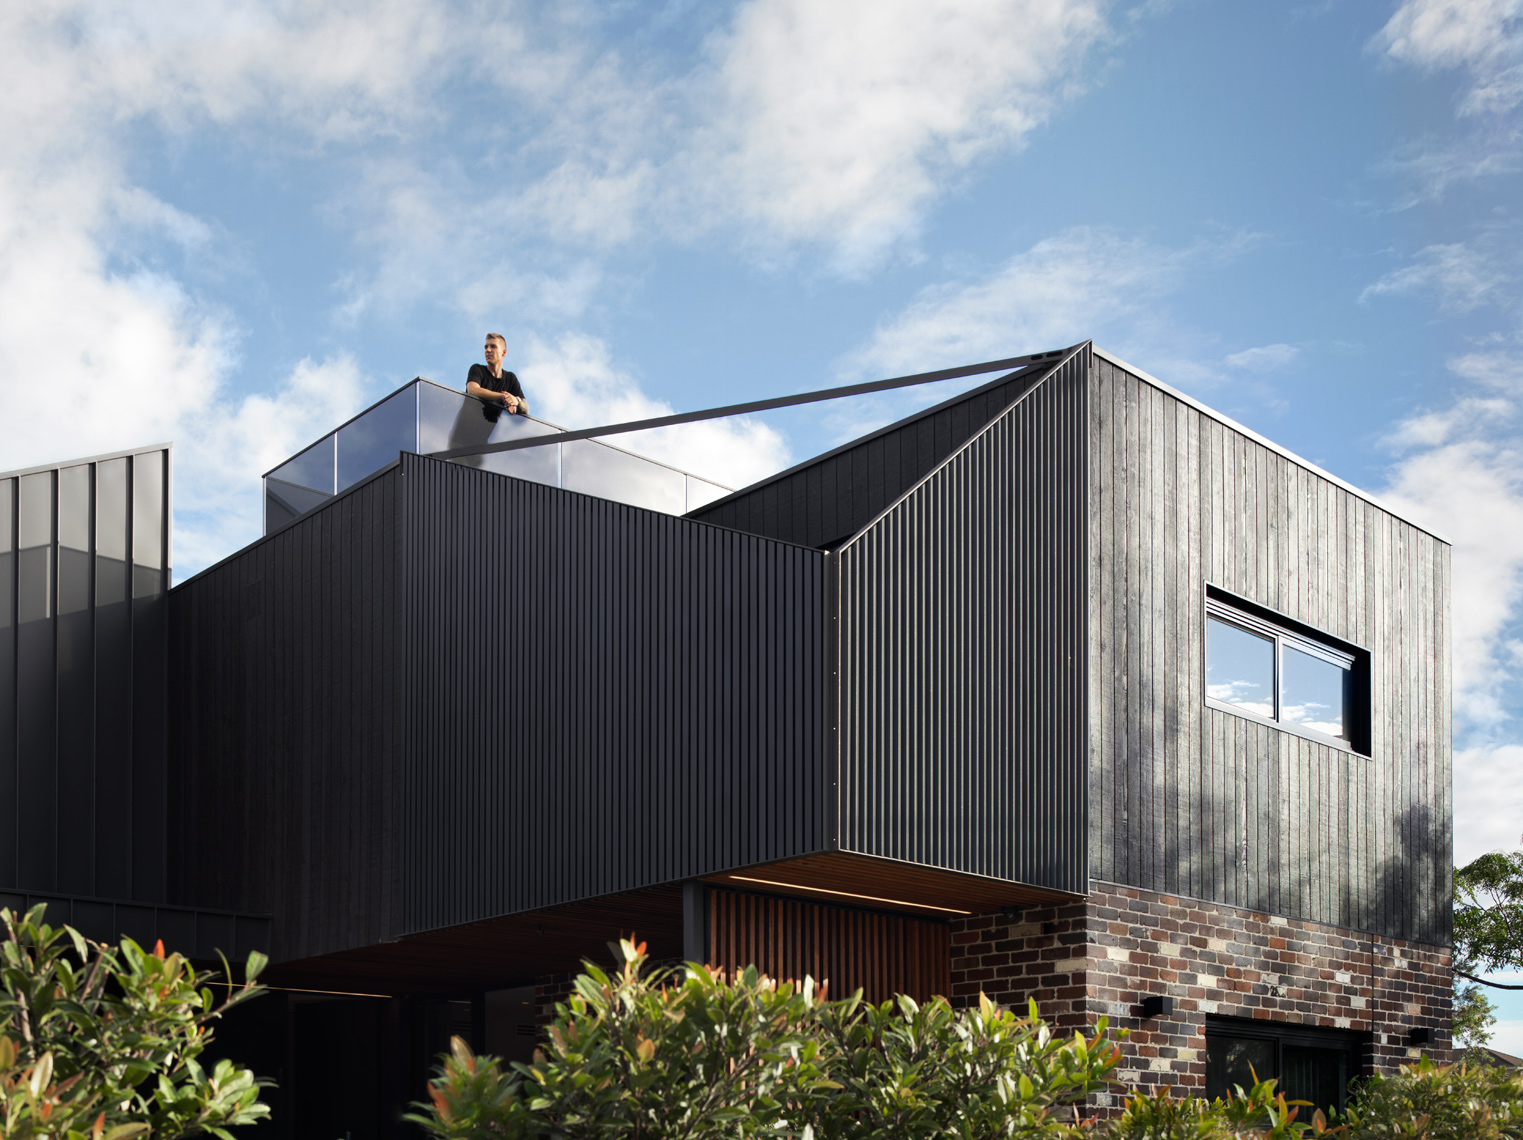 luke-butterly-2019-Jacobson-House-by-Anderson-Architecture-Sydney-NSW-15